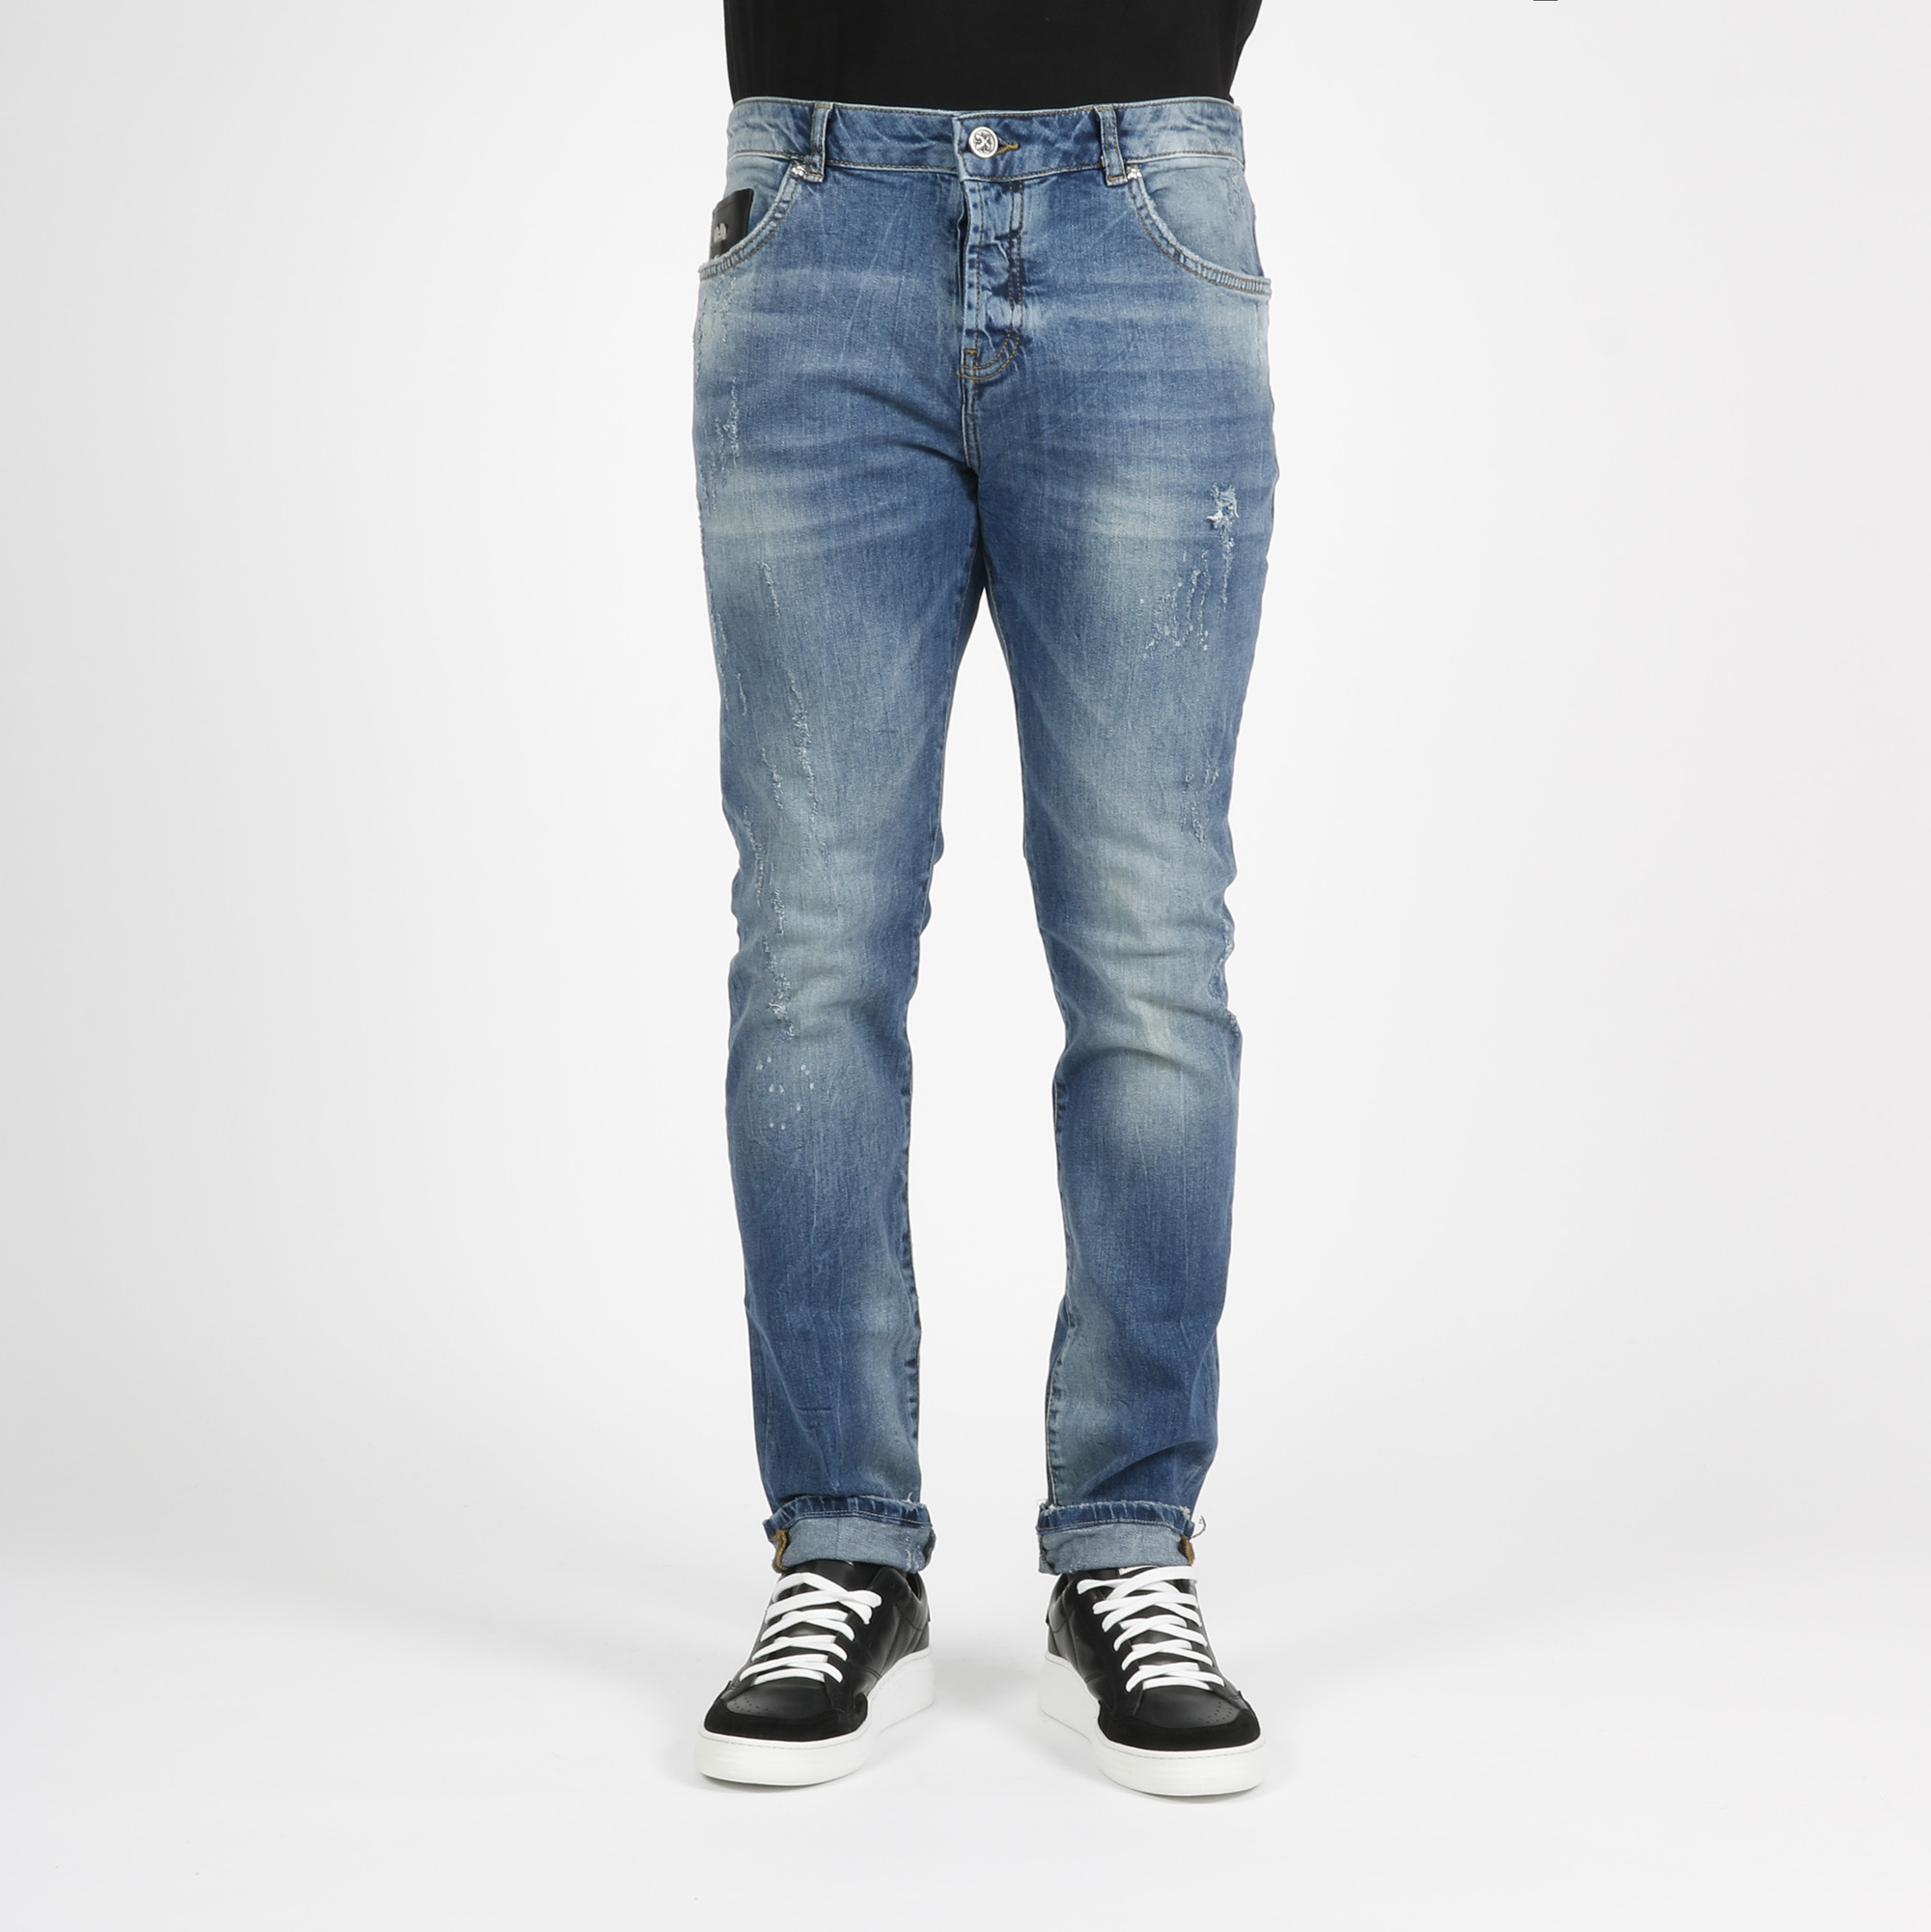 Jeans logo richmond - Denim